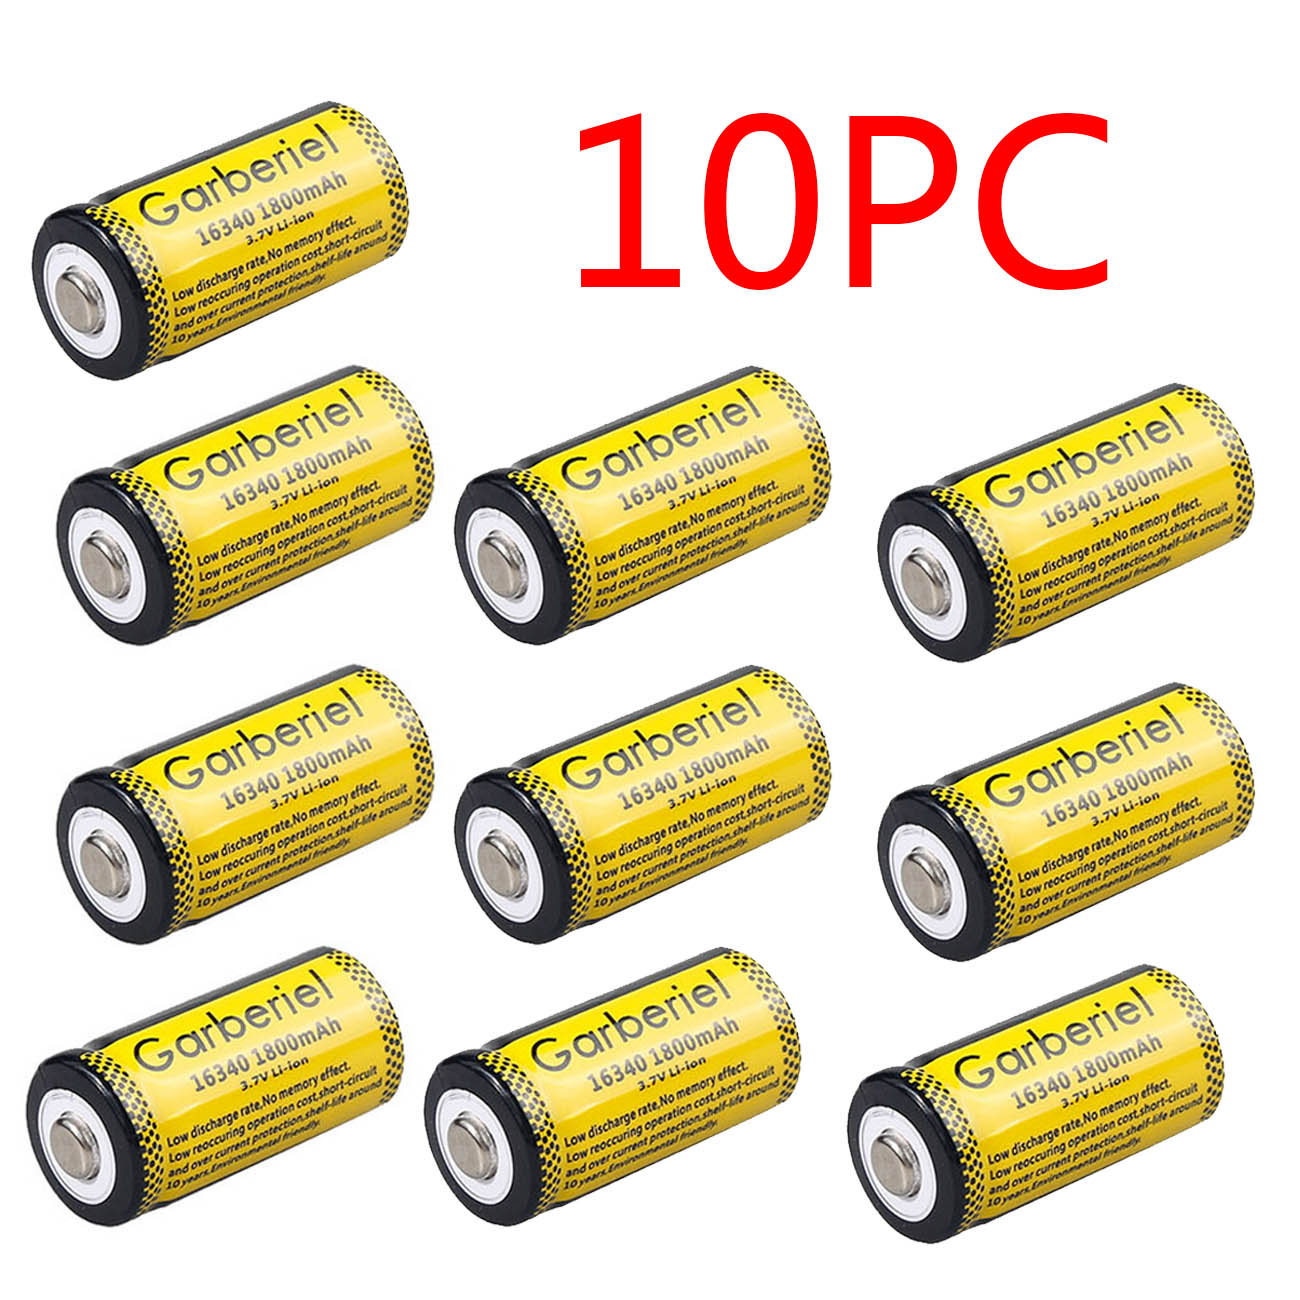 Garberiel 3.7V CR123A 123A CR123 16340 1800Mah Rechargeable Battery+Charger Lot